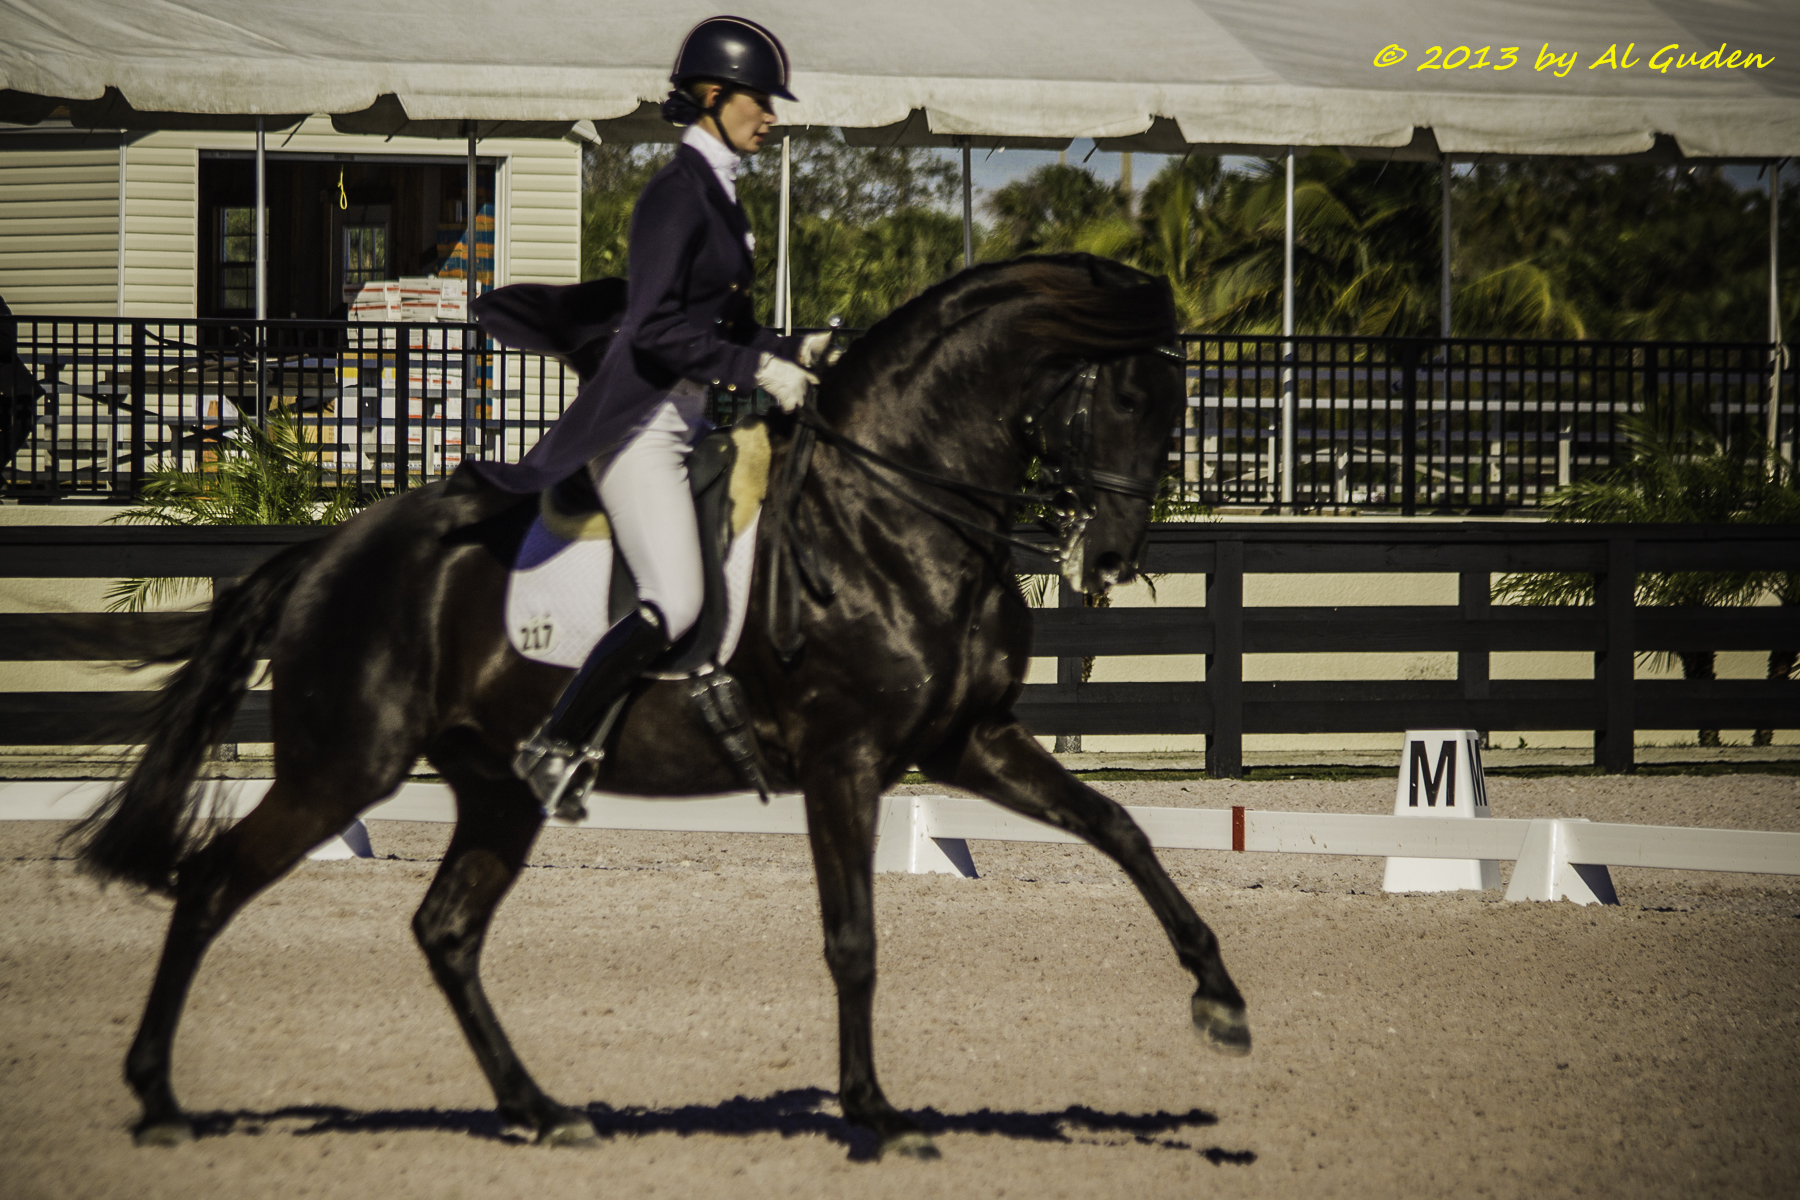 : Caroline Roffman and Uruguai do Arete rode the FEI Prix St. Georges during the Florida Dressage Classic CDI-W. (Photo courtesy of Al Guden)